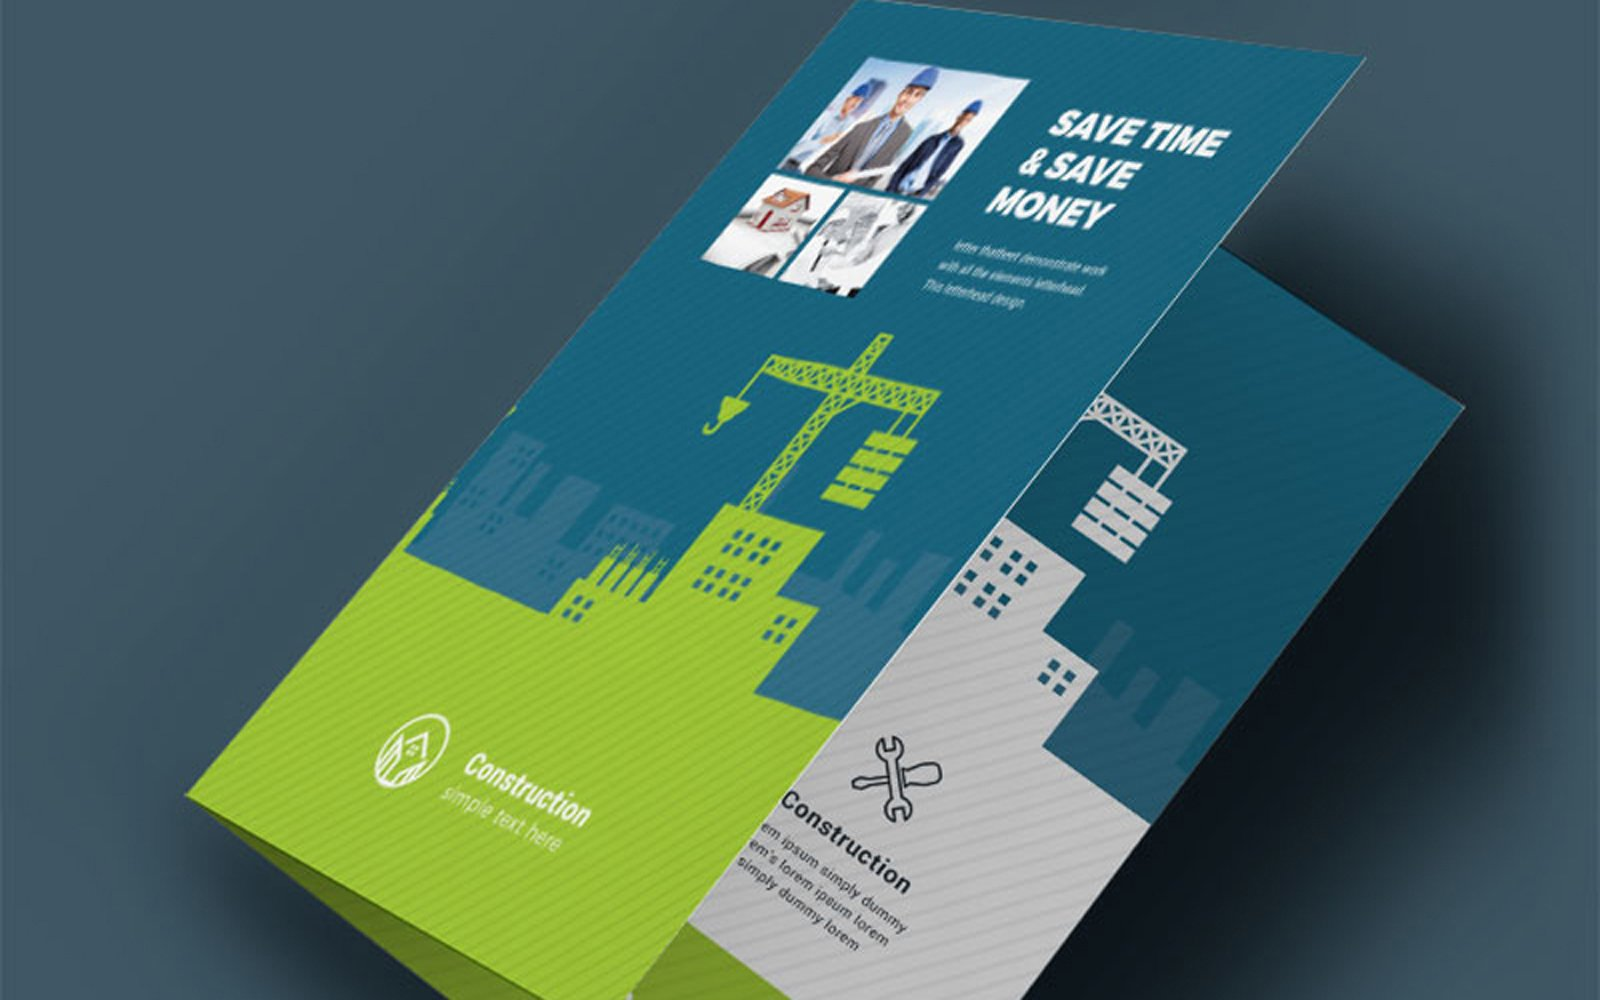 Construction BiFold Brochure With Green Blue Elemens Corporate Identity Template